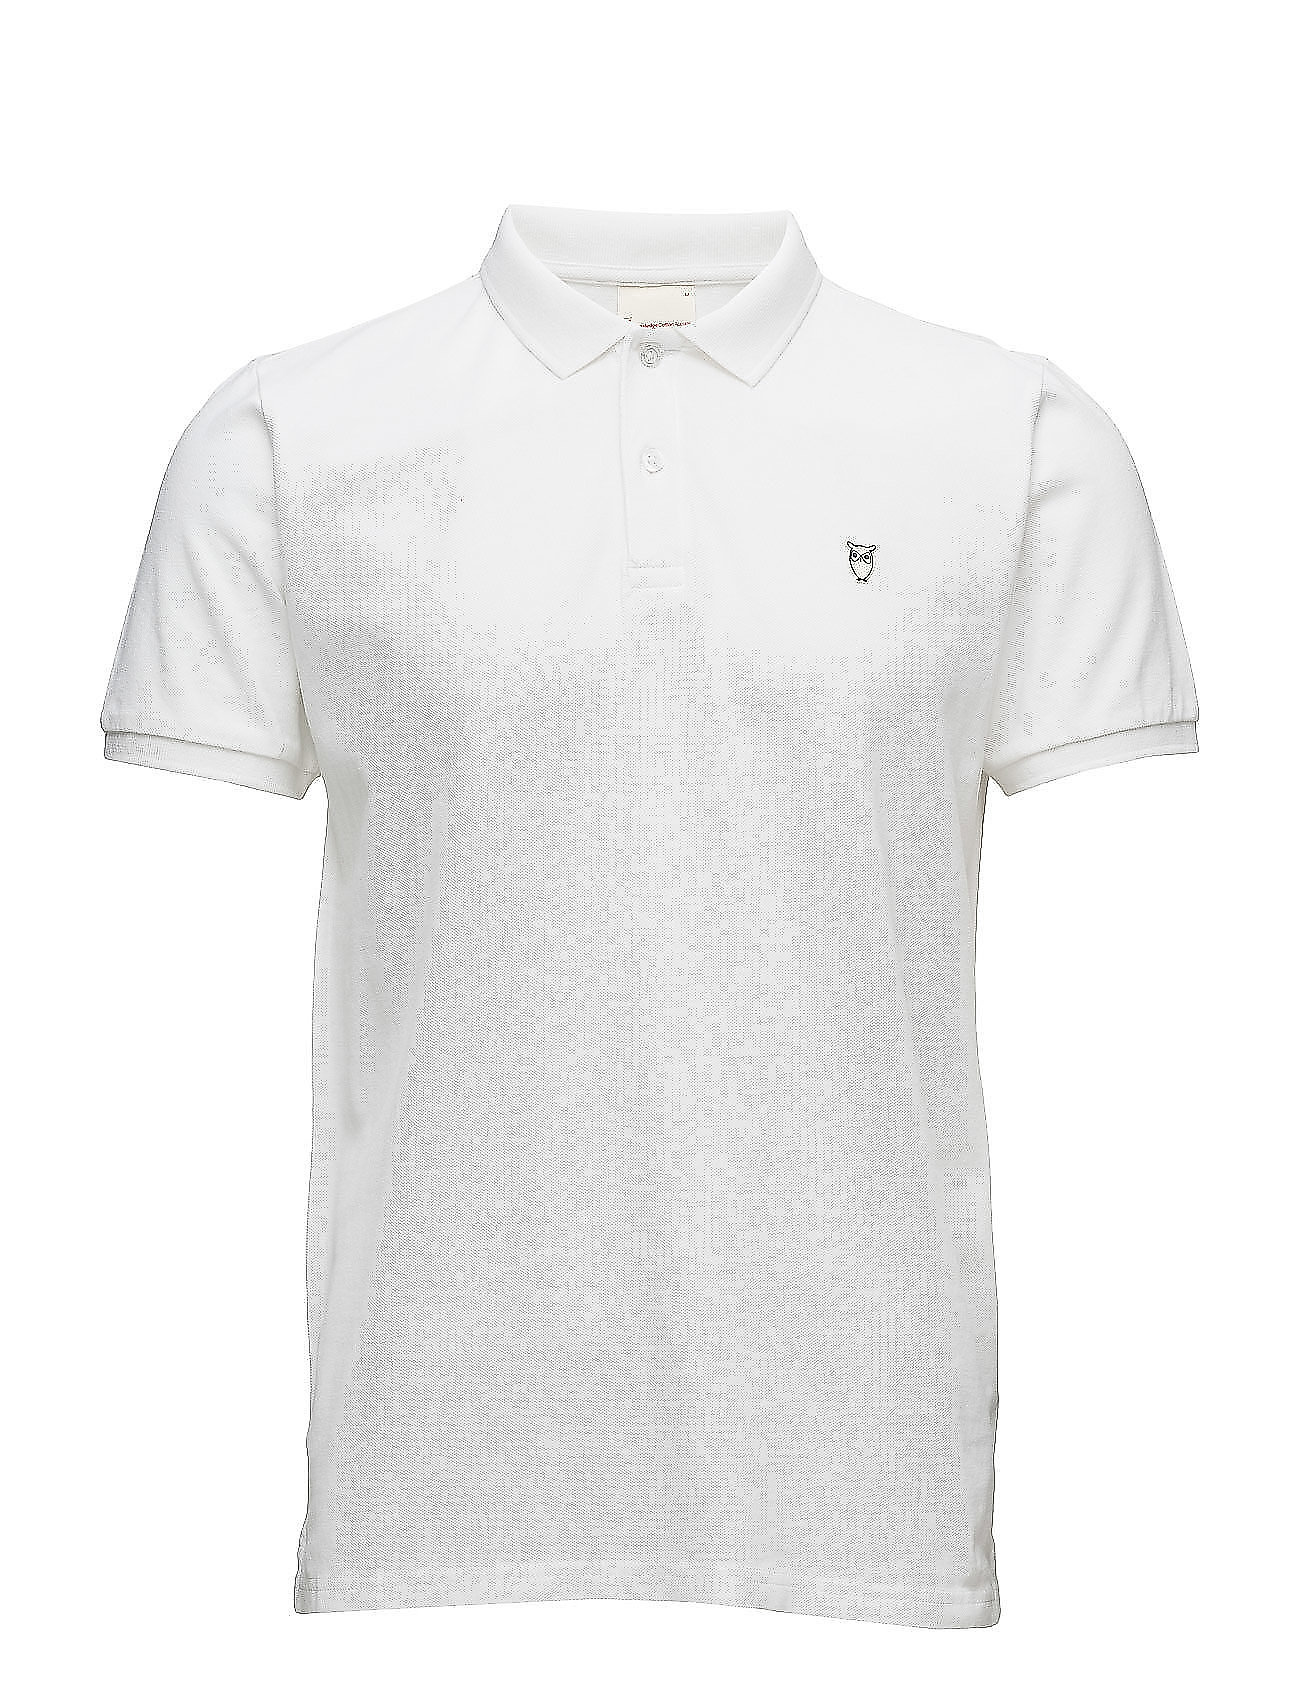 Knowledge Cotton Apparel Pique Polo -  GOTS/Vegan - BRIGHT WHITE